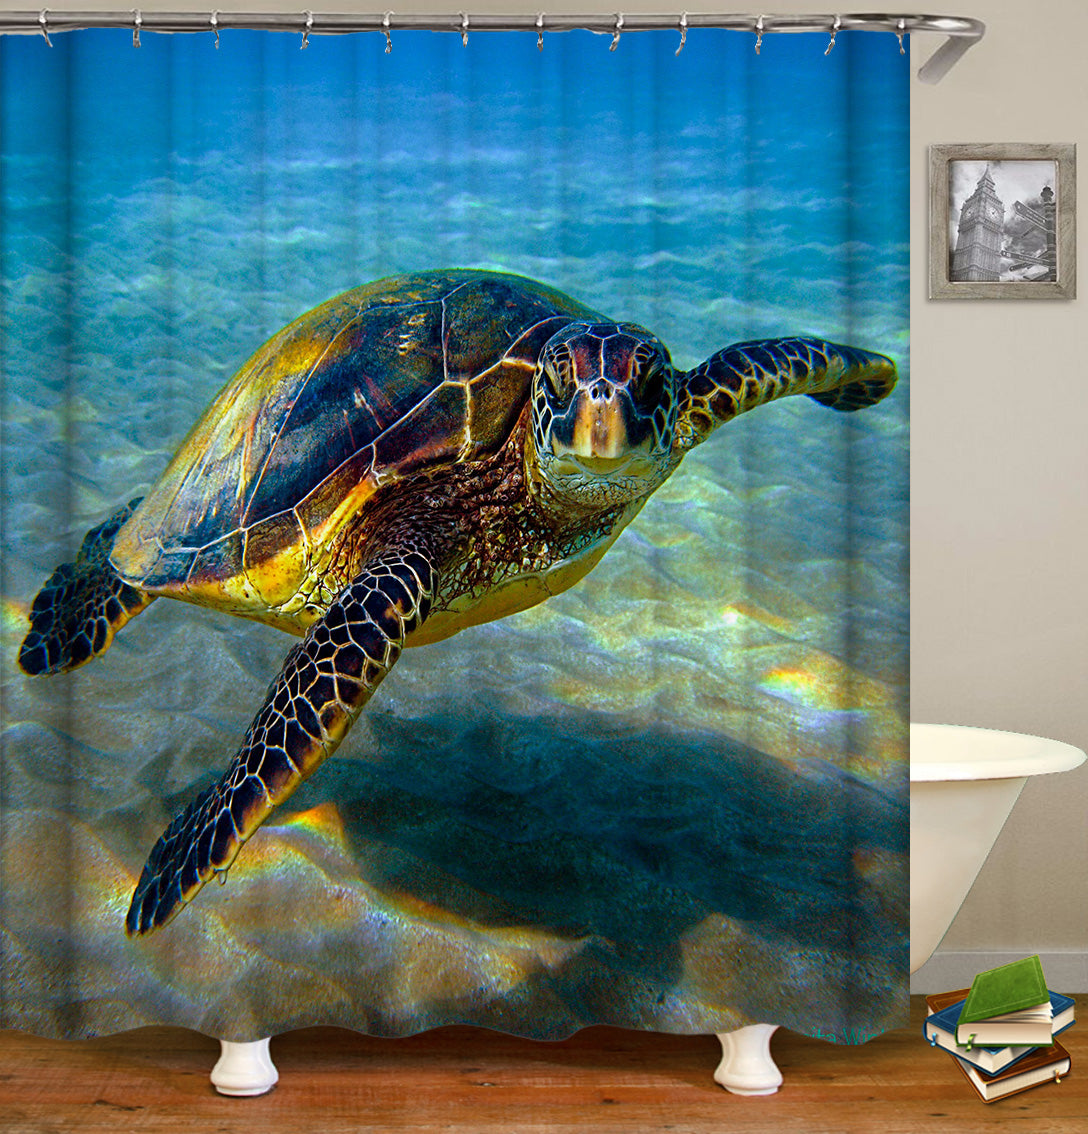 Sea Turtle Shower Curtains Fabric Cute Teal Polyester Cloth Print Bathroom Curtains Fabric Shower Curtains